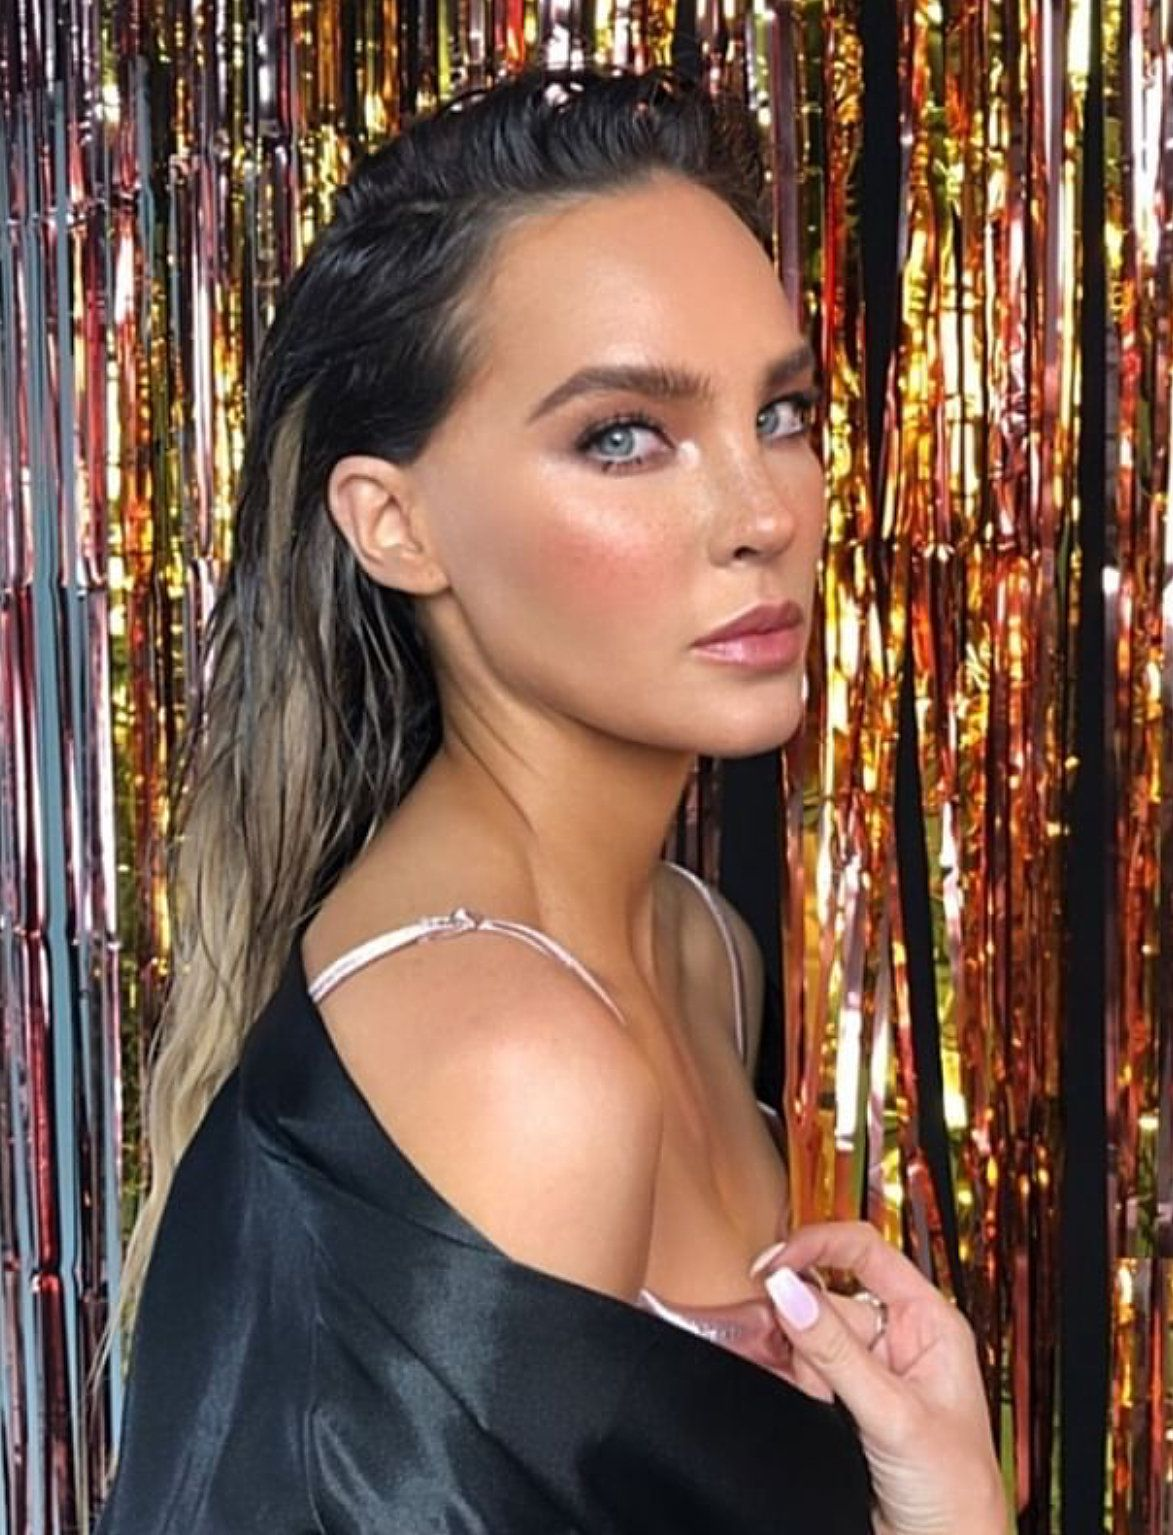 Belinda glowy highlighted makeup look with bronzer, blush